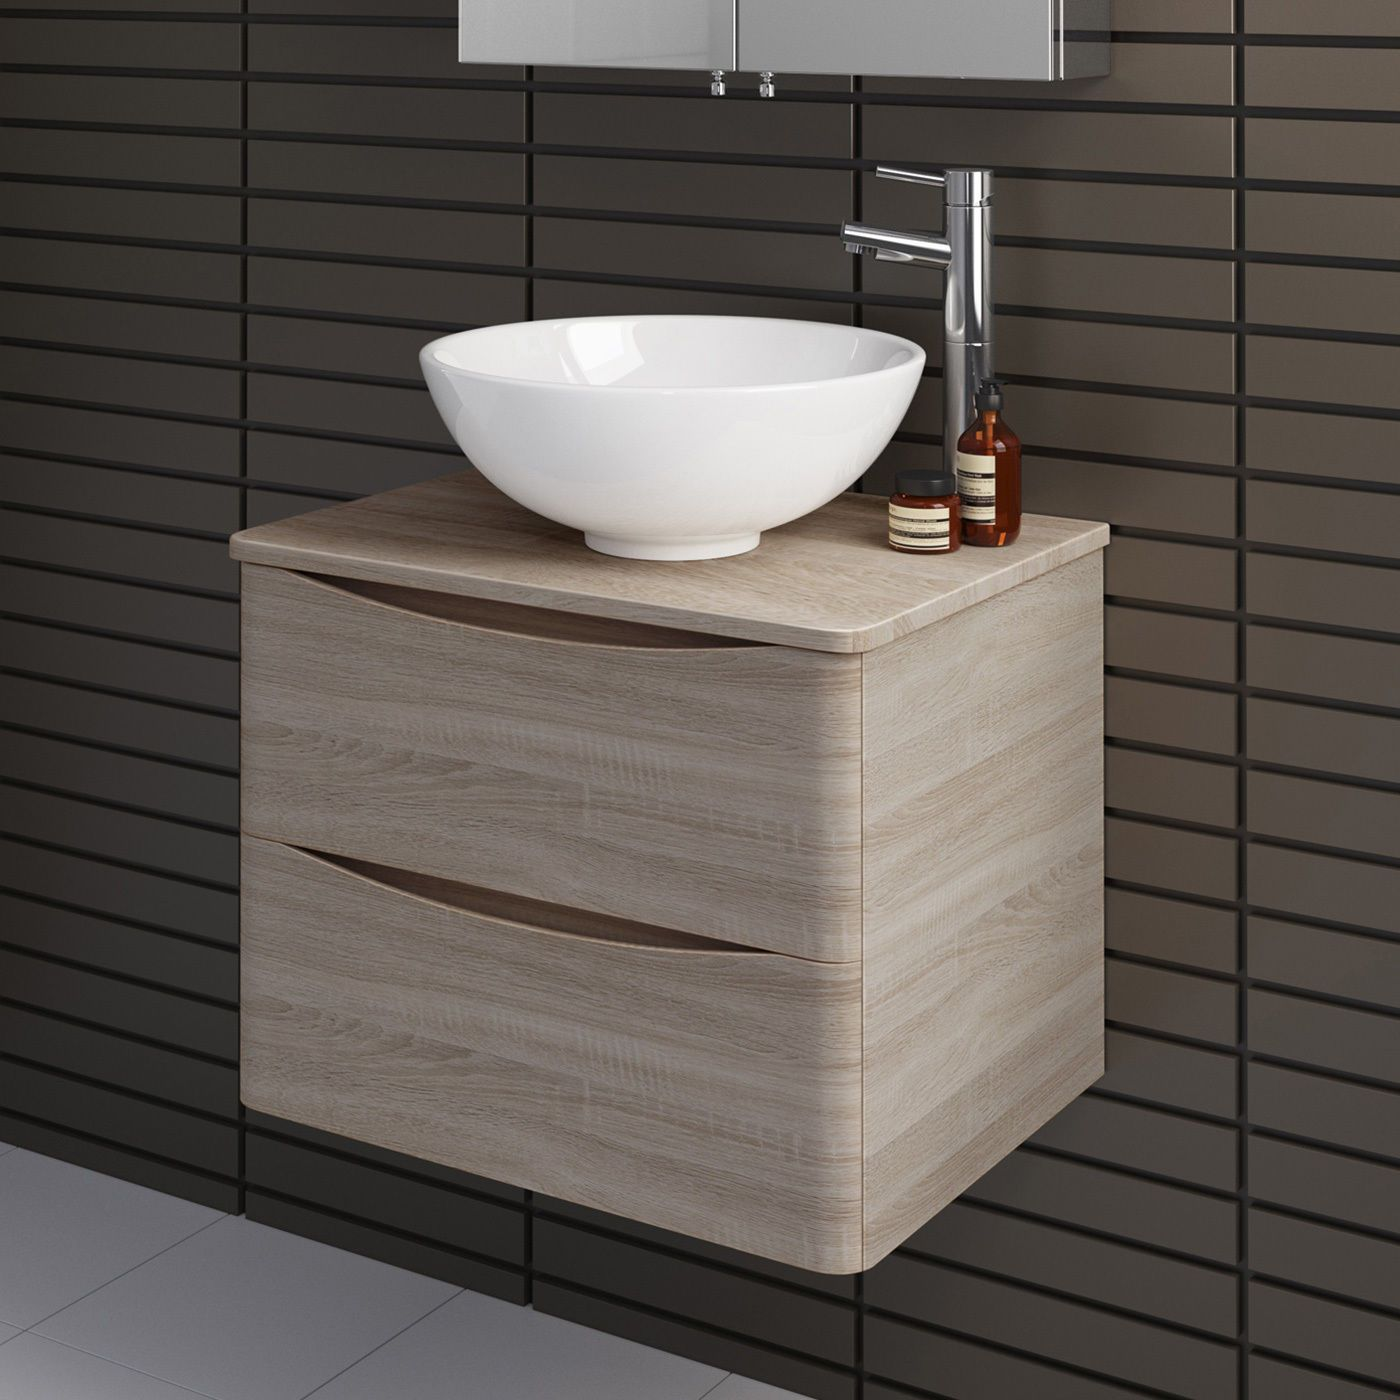 Phenomenal Modern Oak Effect Wall Hung Bathroom Vanity Unit With Download Free Architecture Designs Scobabritishbridgeorg